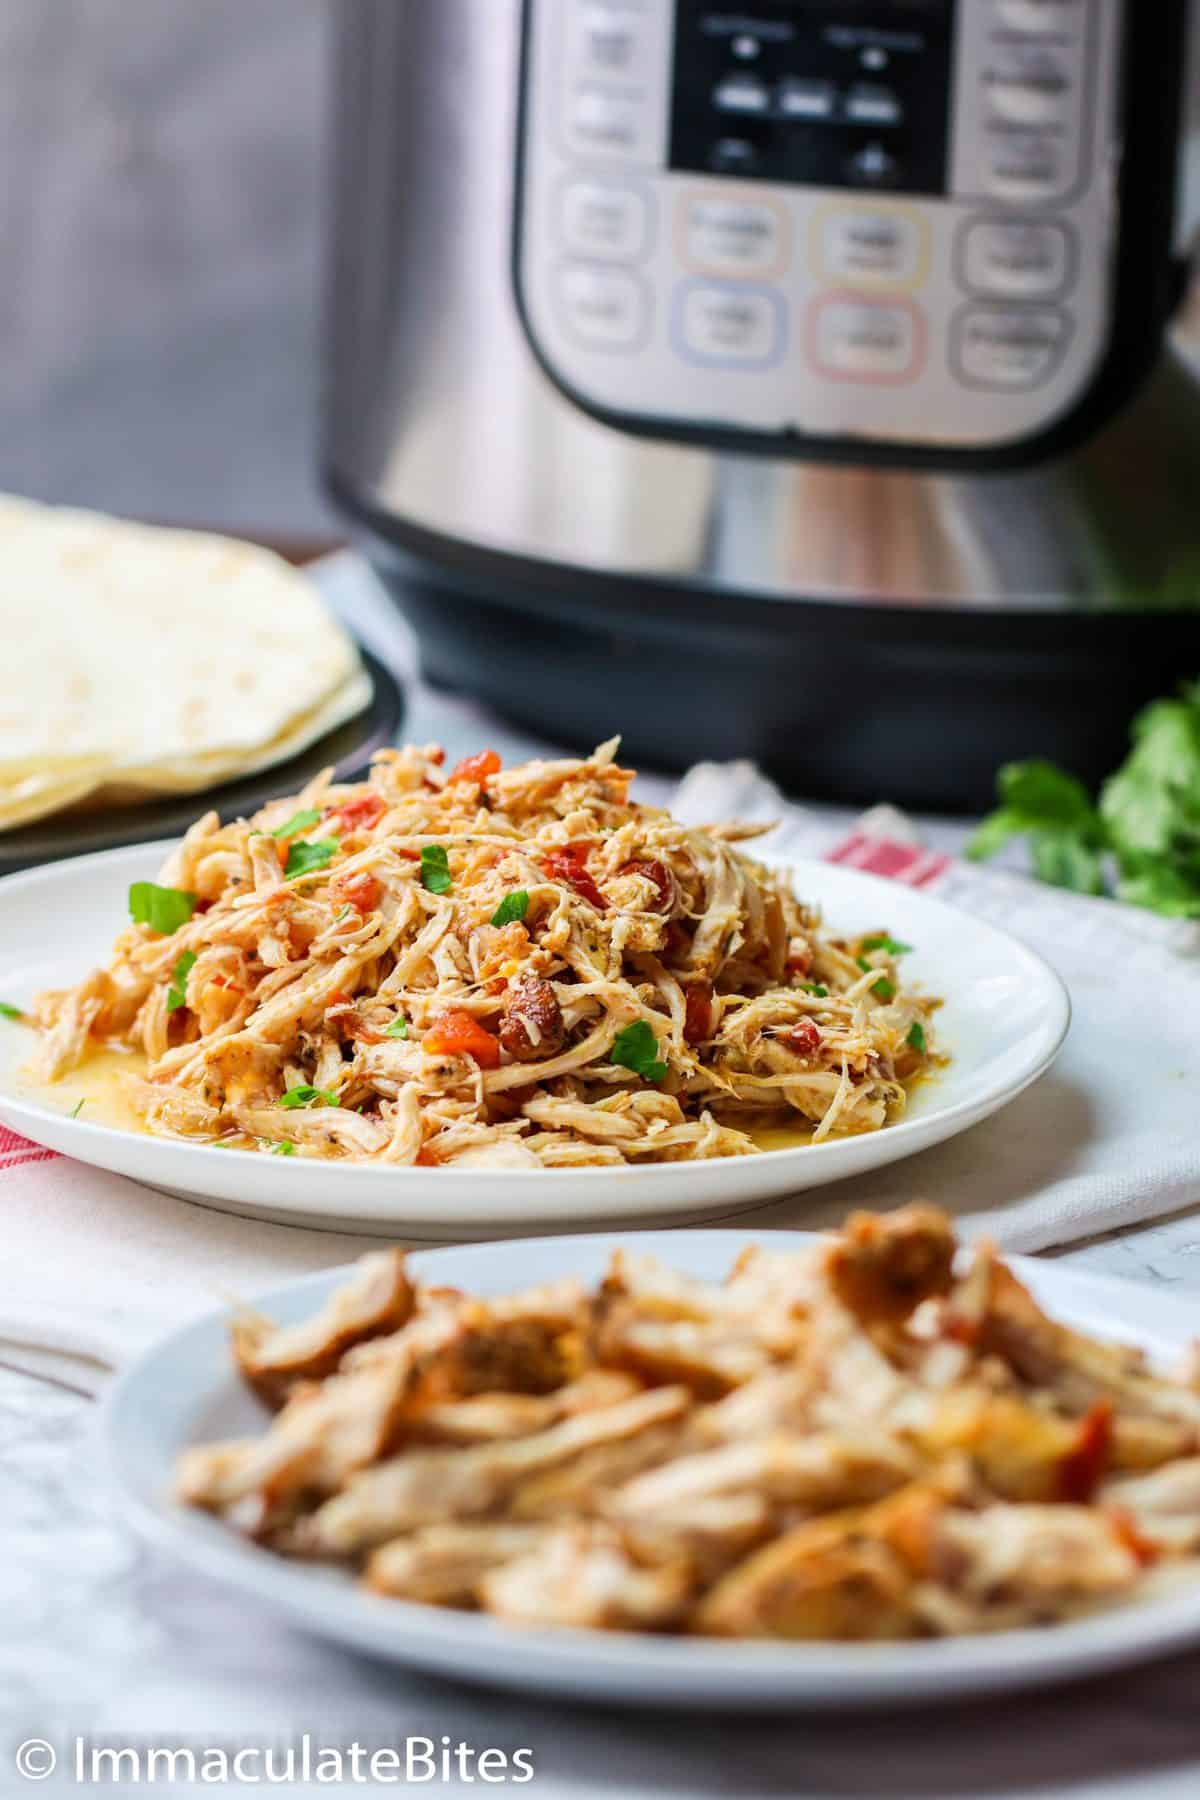 Instant Pot Shredded Chicken on a Plate